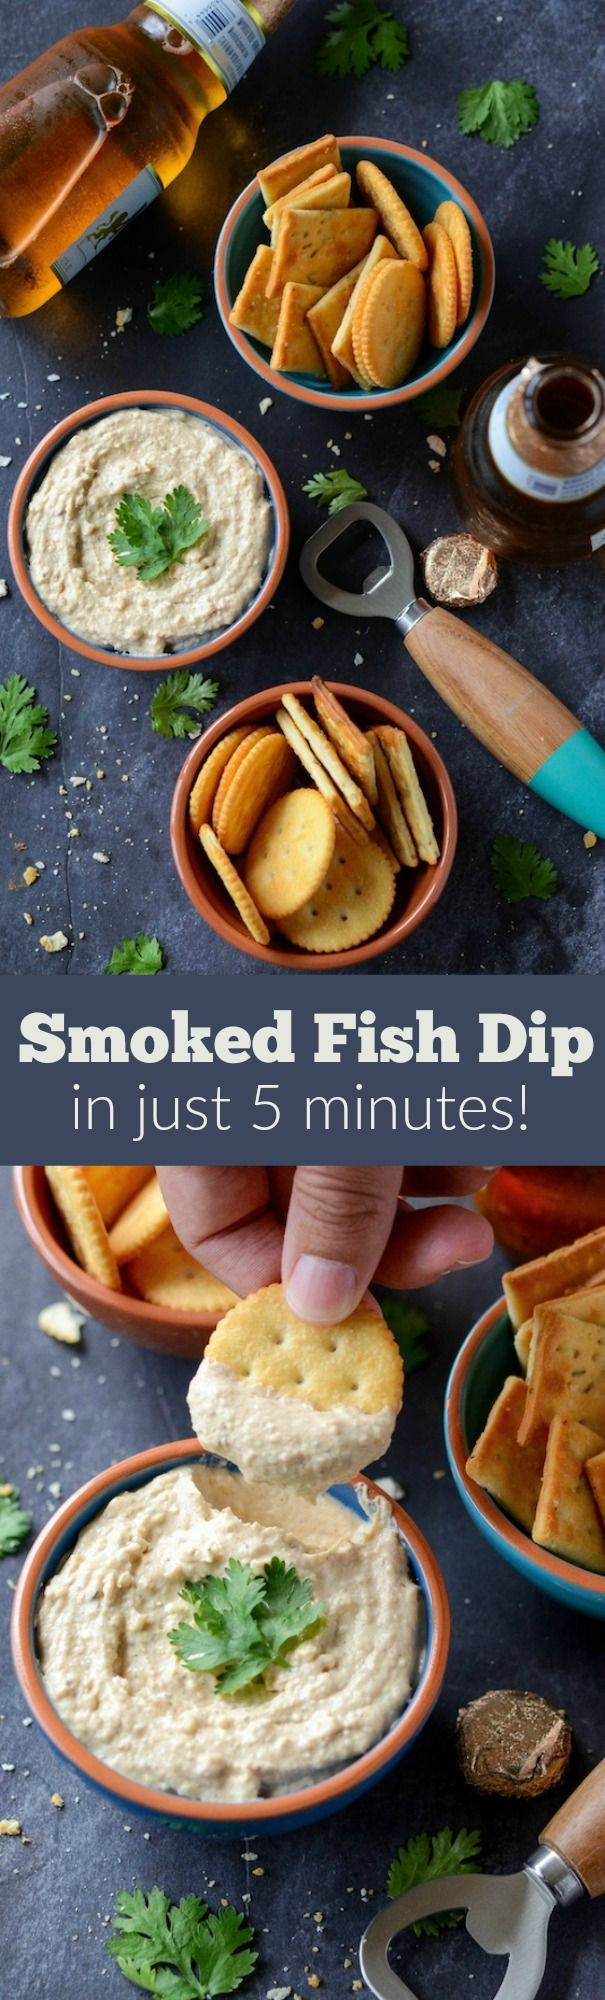 Smoked fish dip recipe smoked fish dips and classic for Smoked fish spread